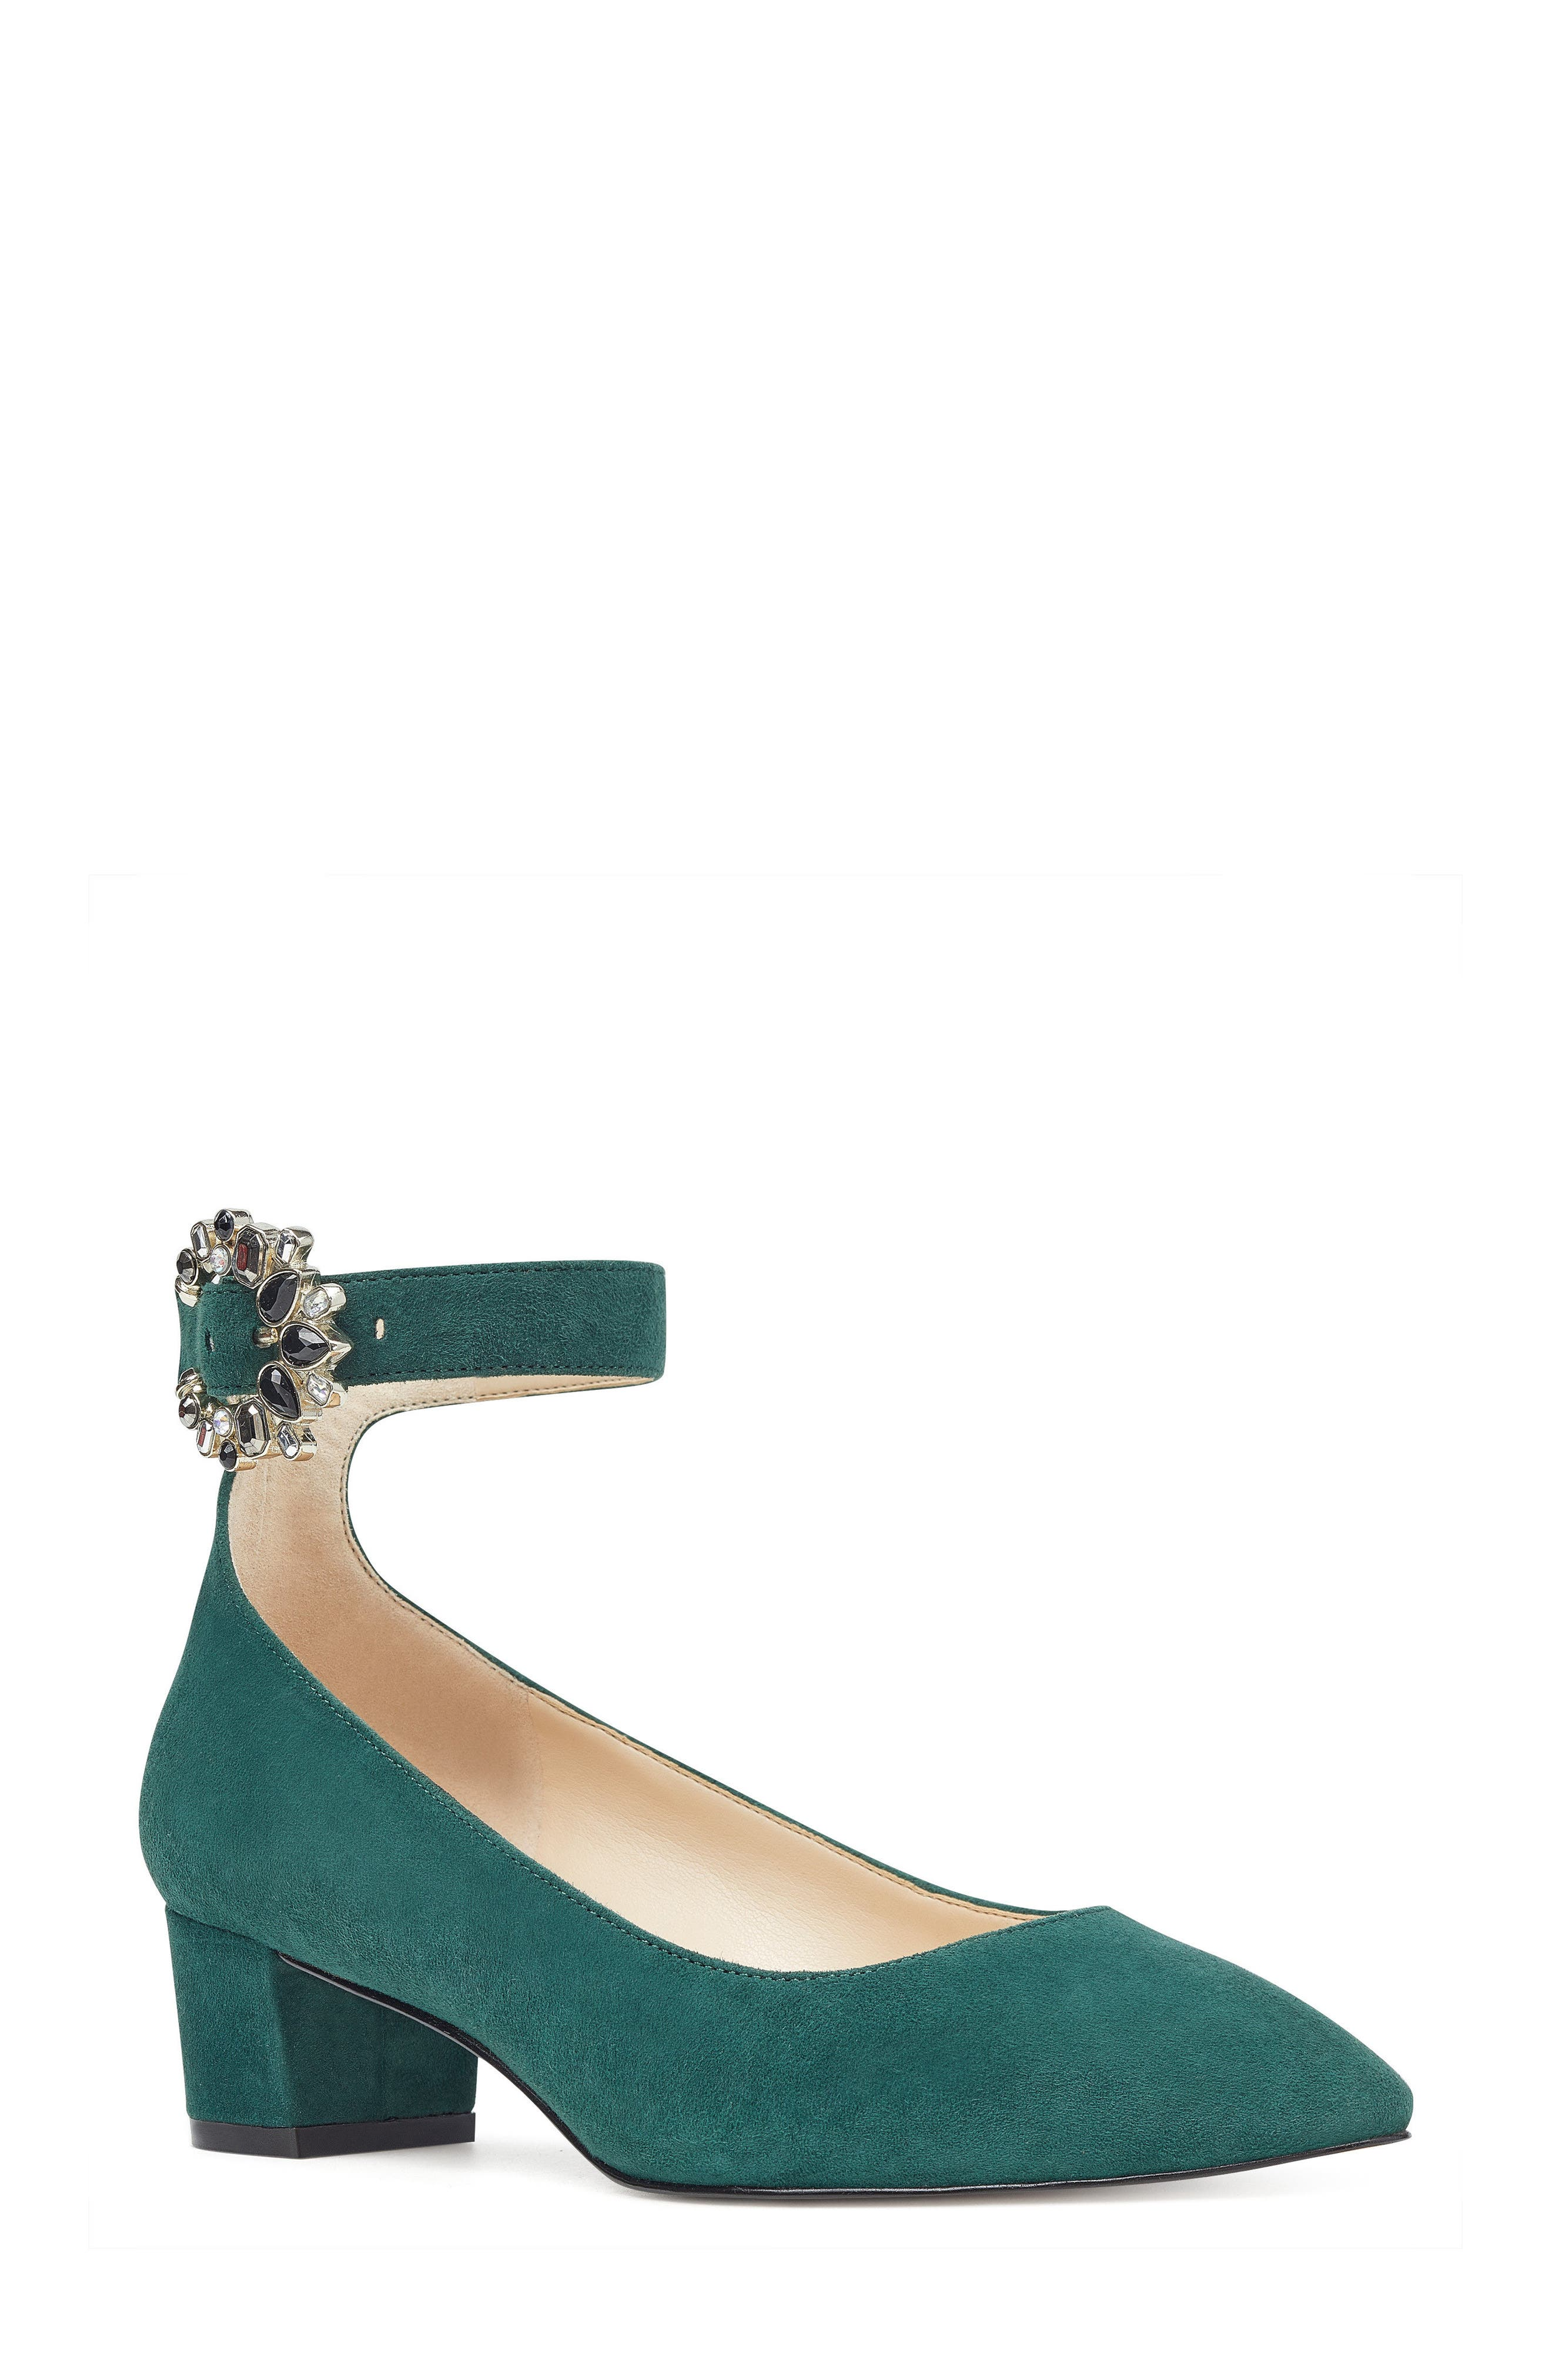 Bartly Ankle Strap Pump,                             Main thumbnail 3, color,